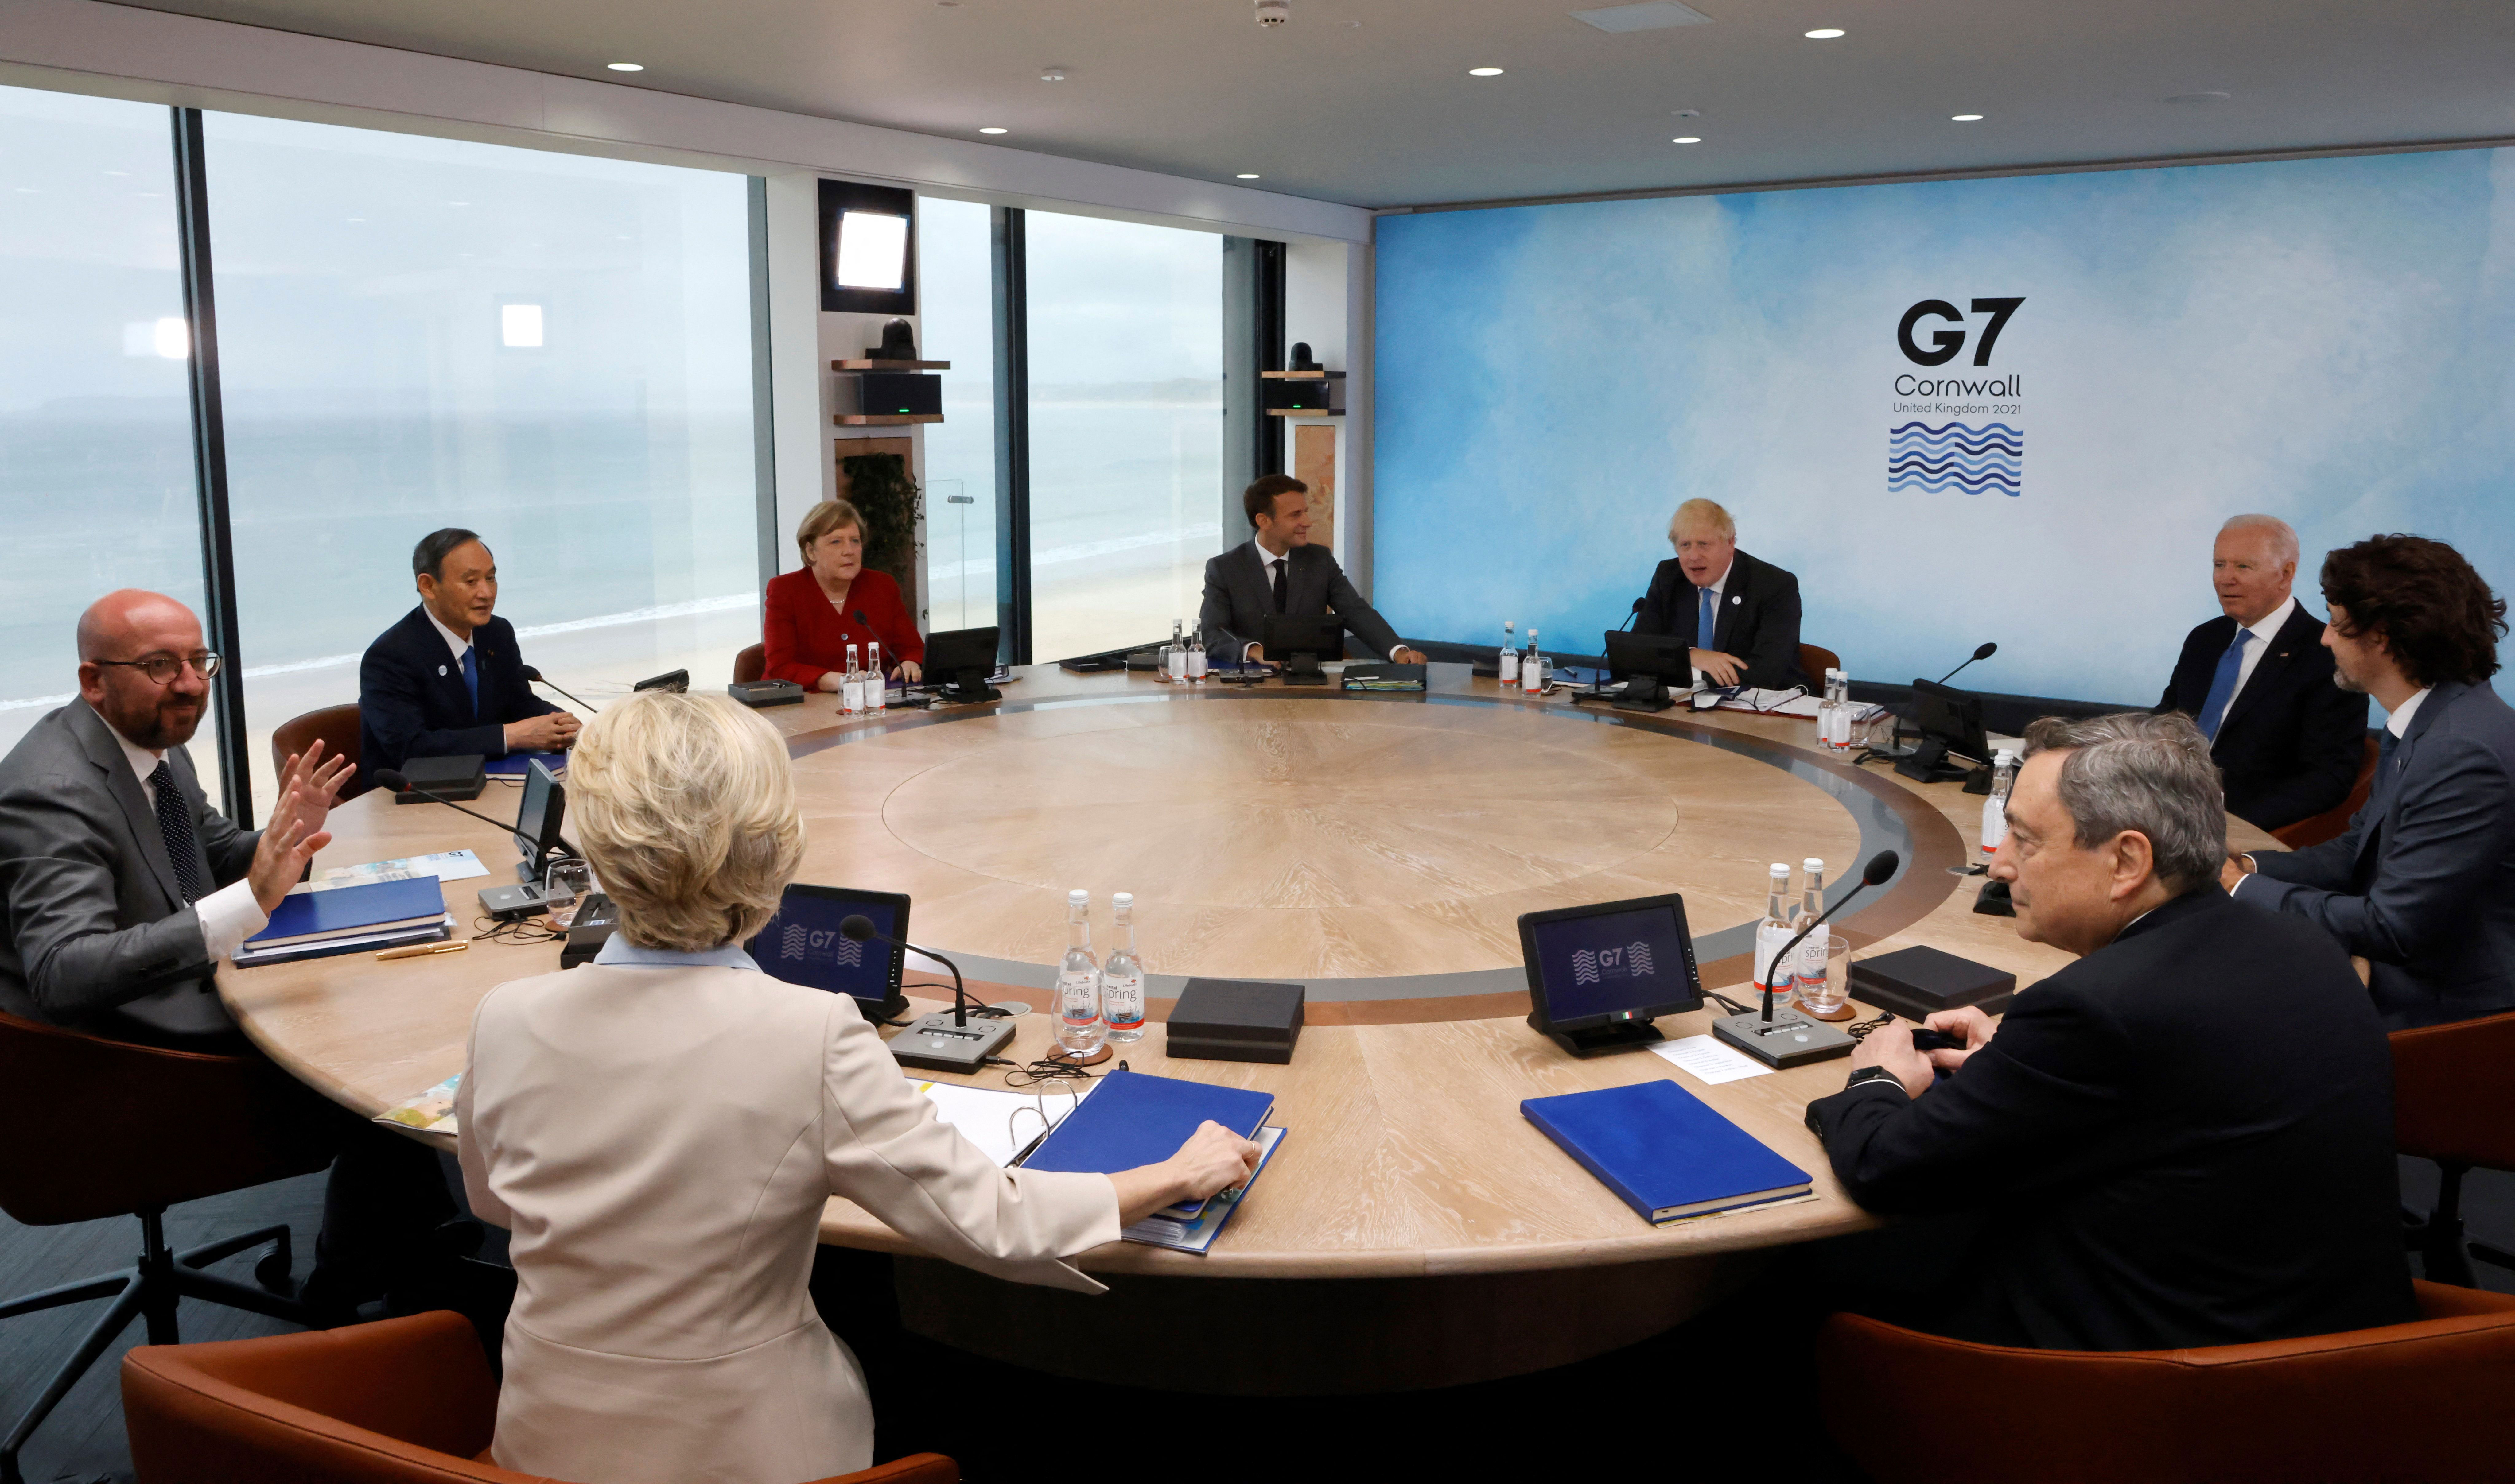 President of the European Council Charles Michel, left, speaks with leaders at the G7 summit in Carbis Bay, England, on June 11.